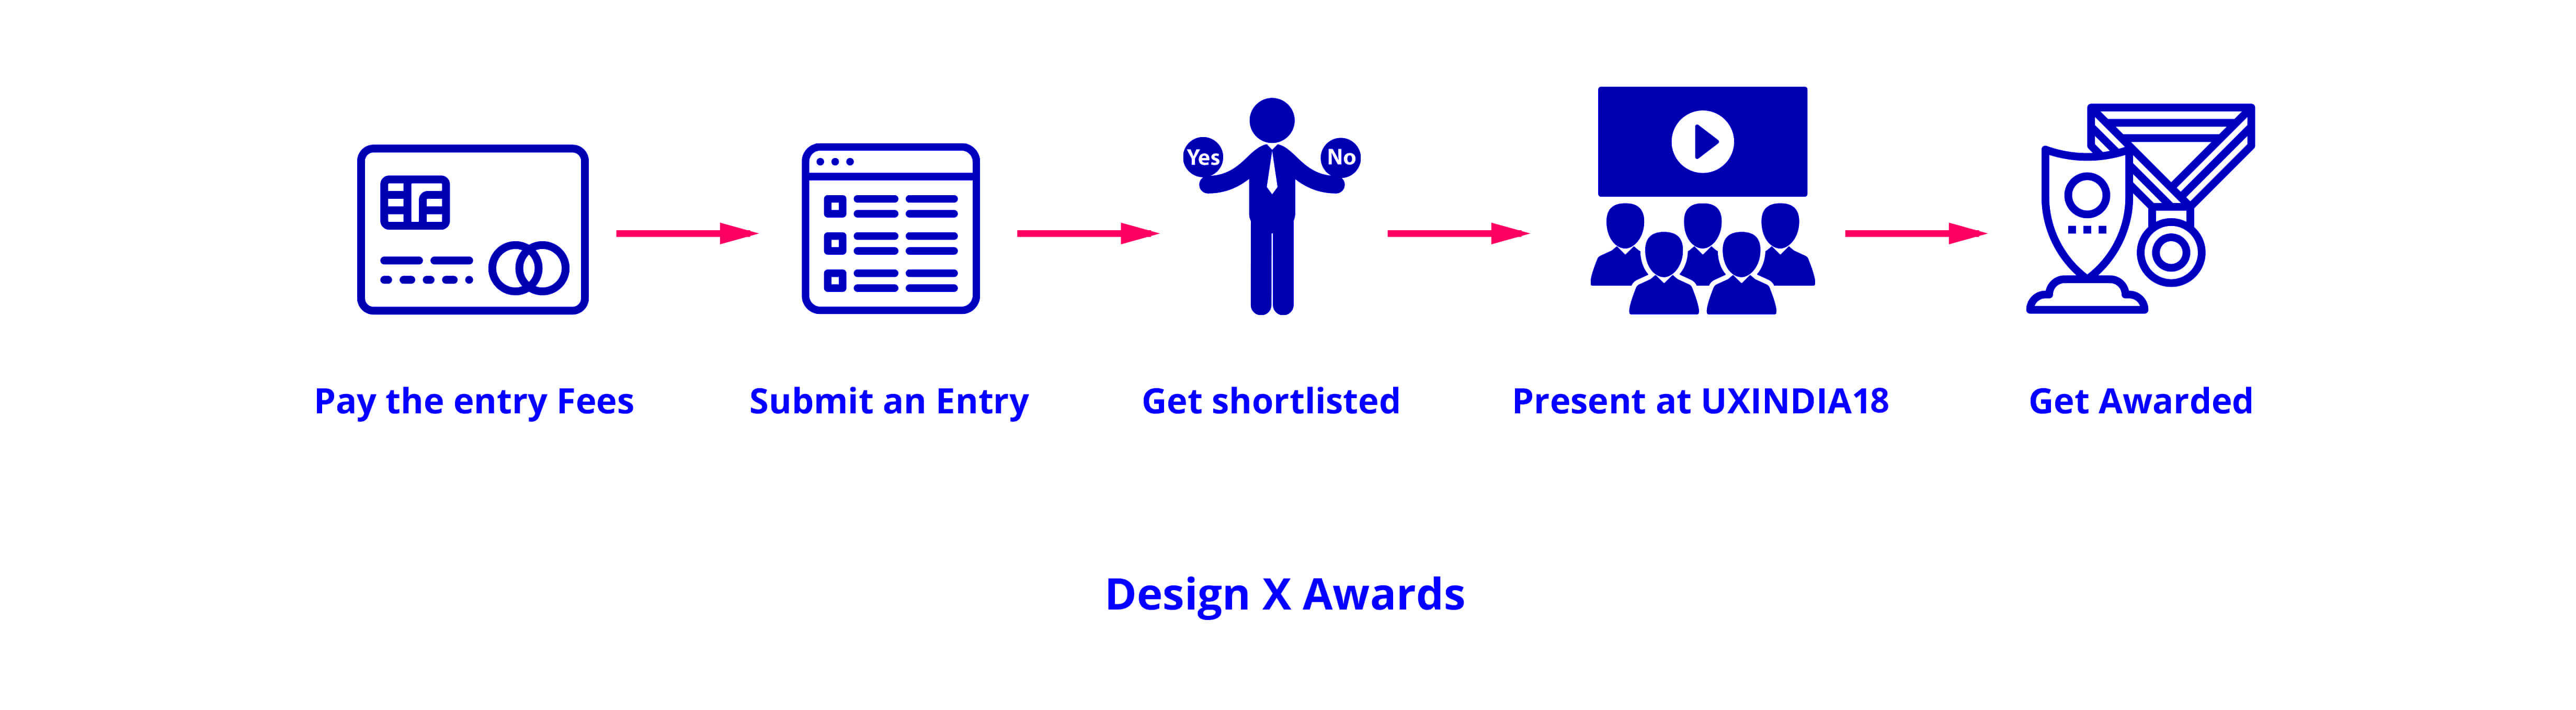 Design X Awards